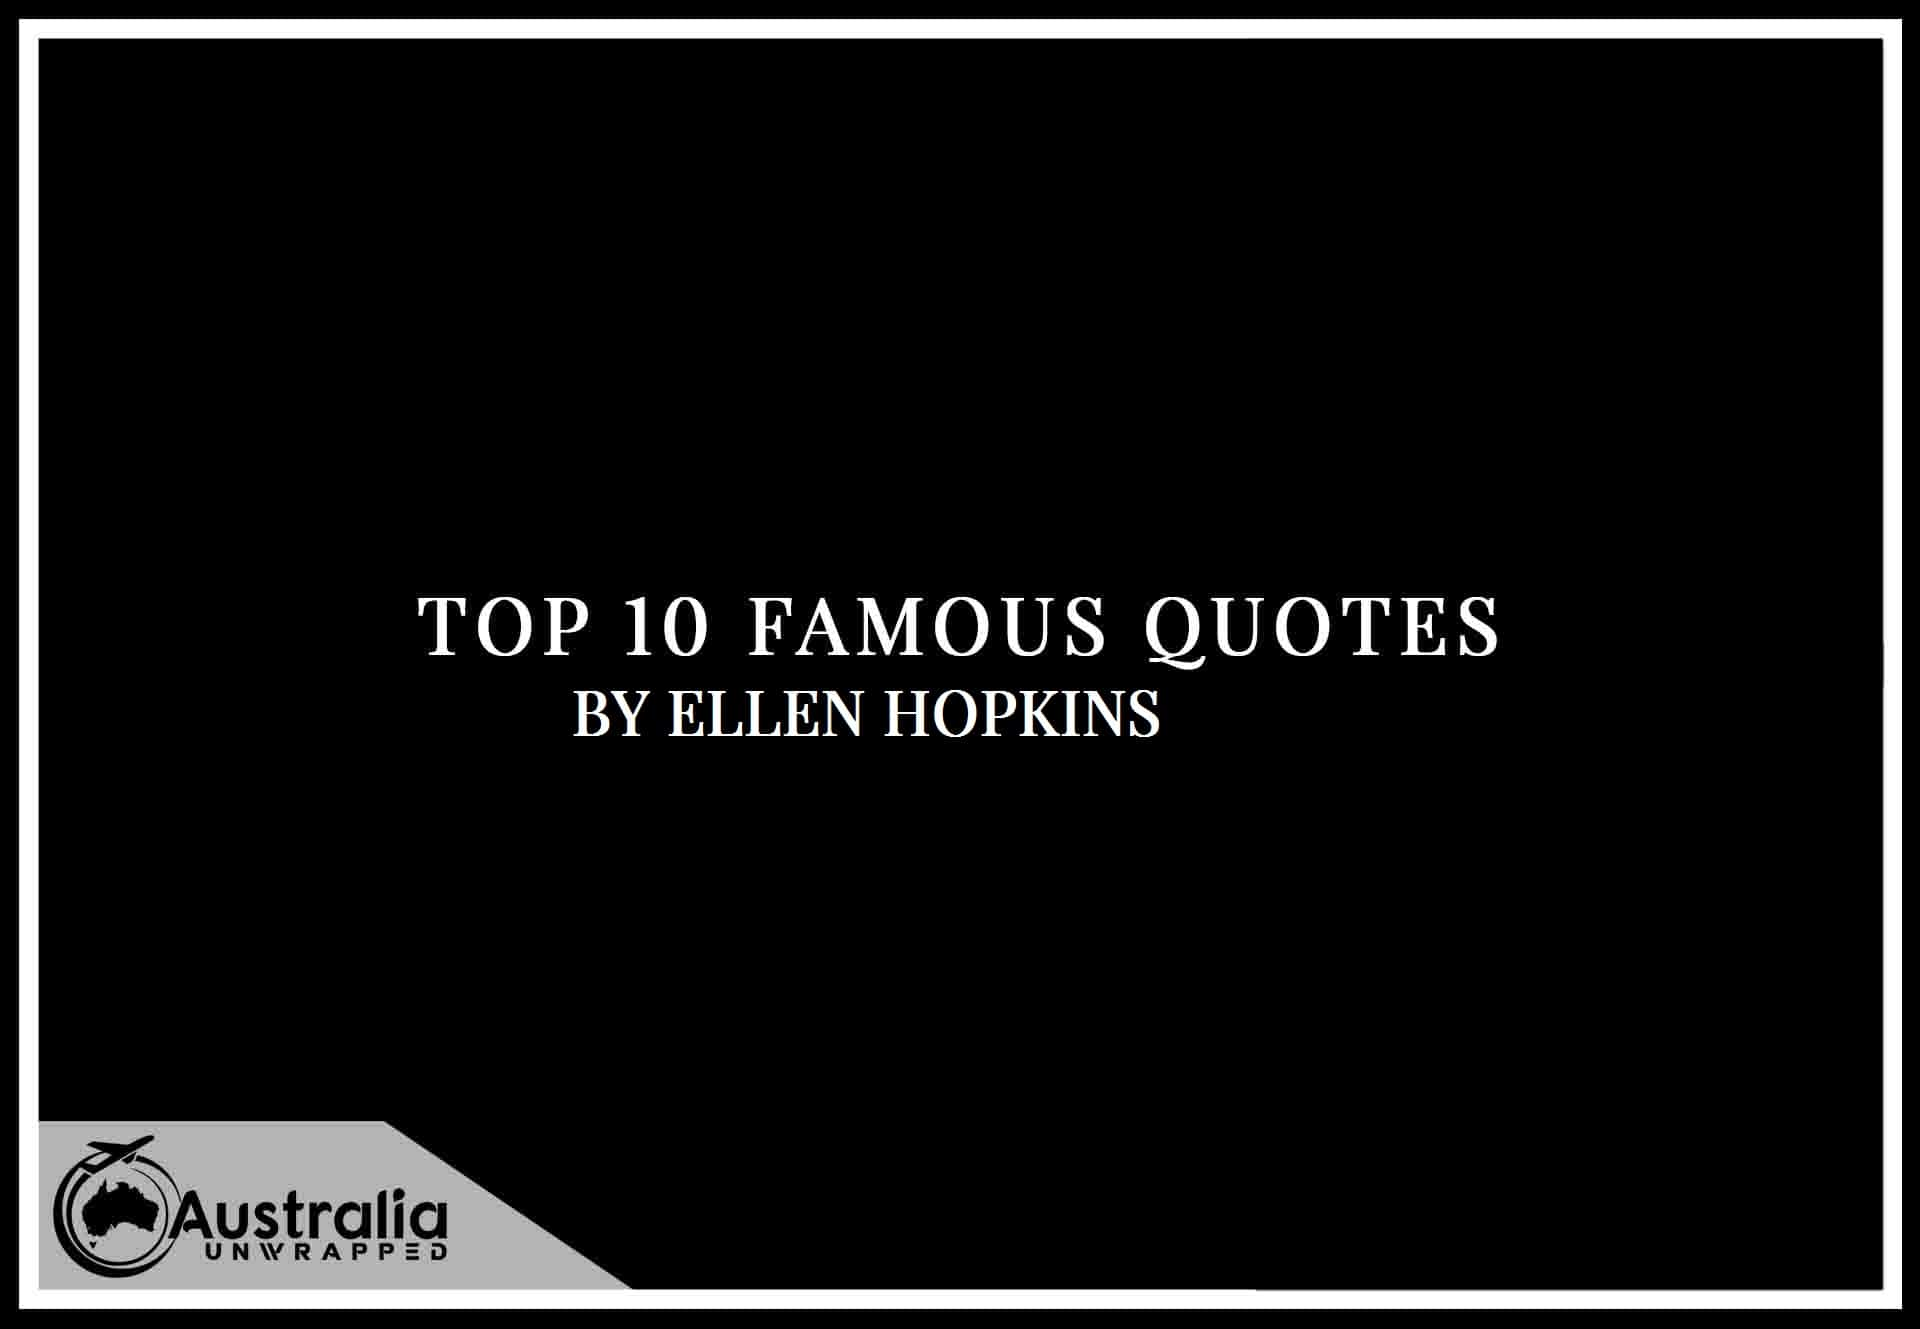 Ellen Hopkins's Top 10 Popular and Famous Quotes